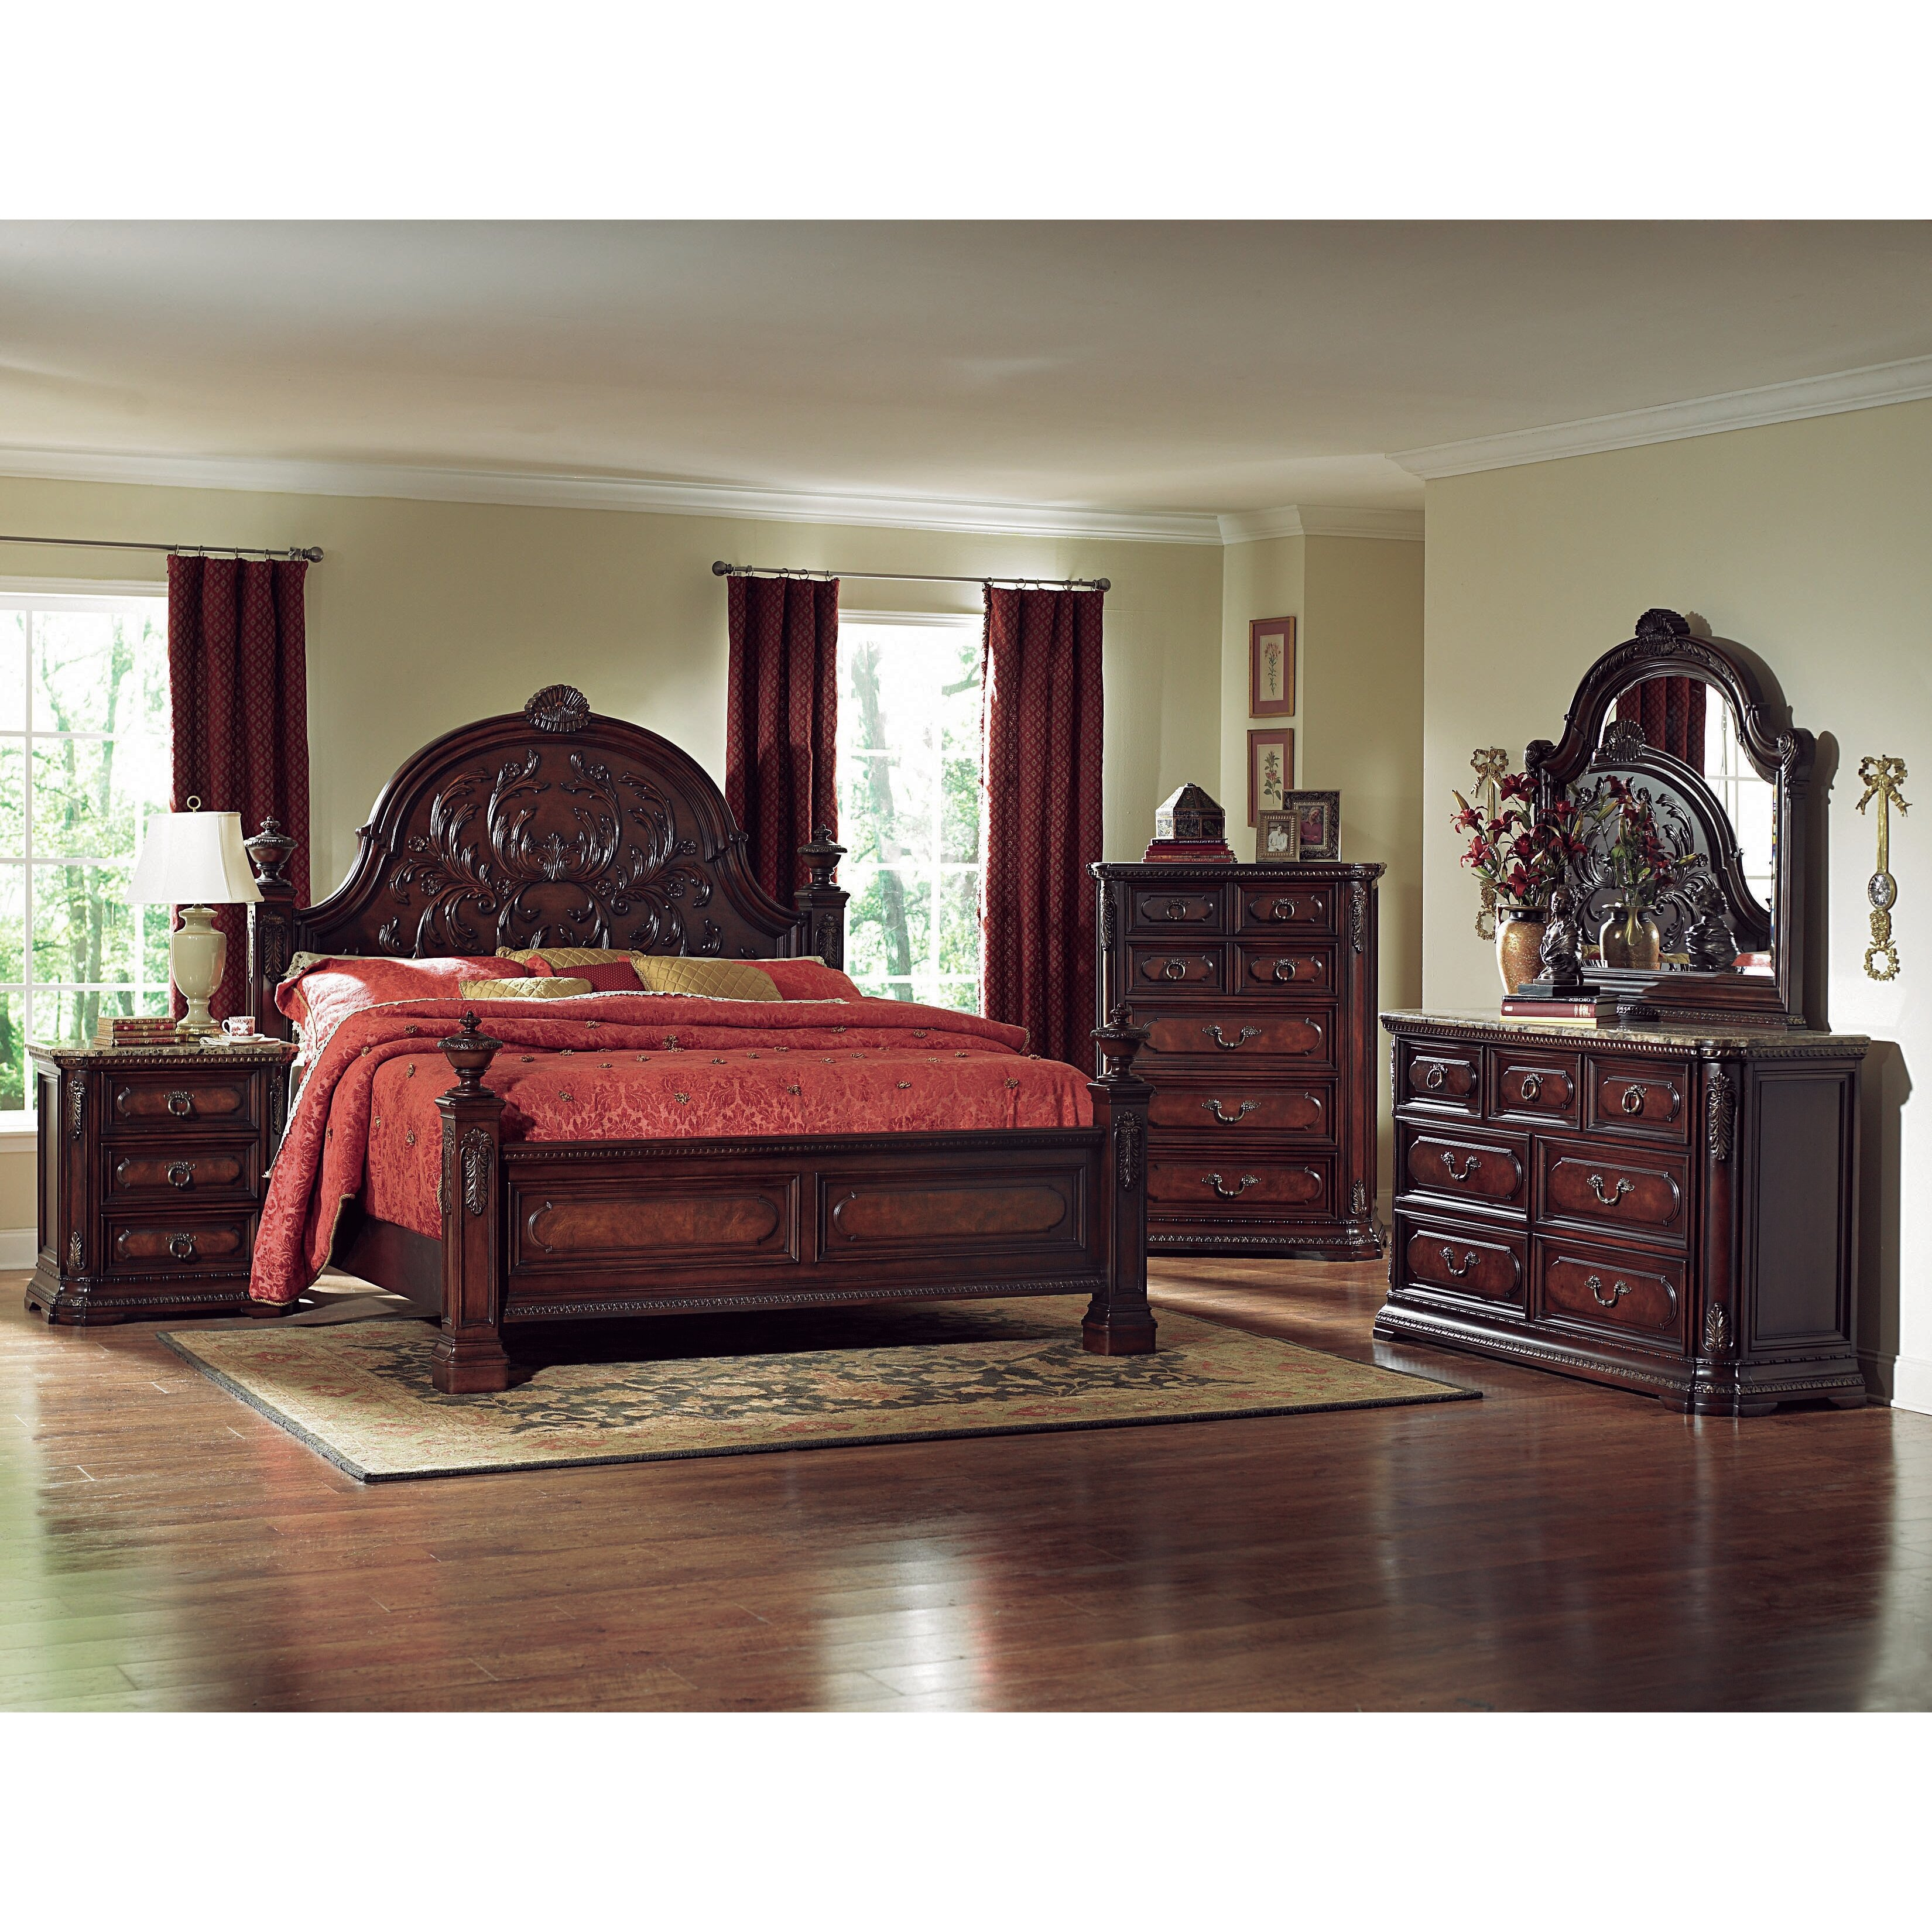 Woodbridge Home Designs Furniture Review Woodhaven Hill Spanish Bay Panel Bed Wayfair